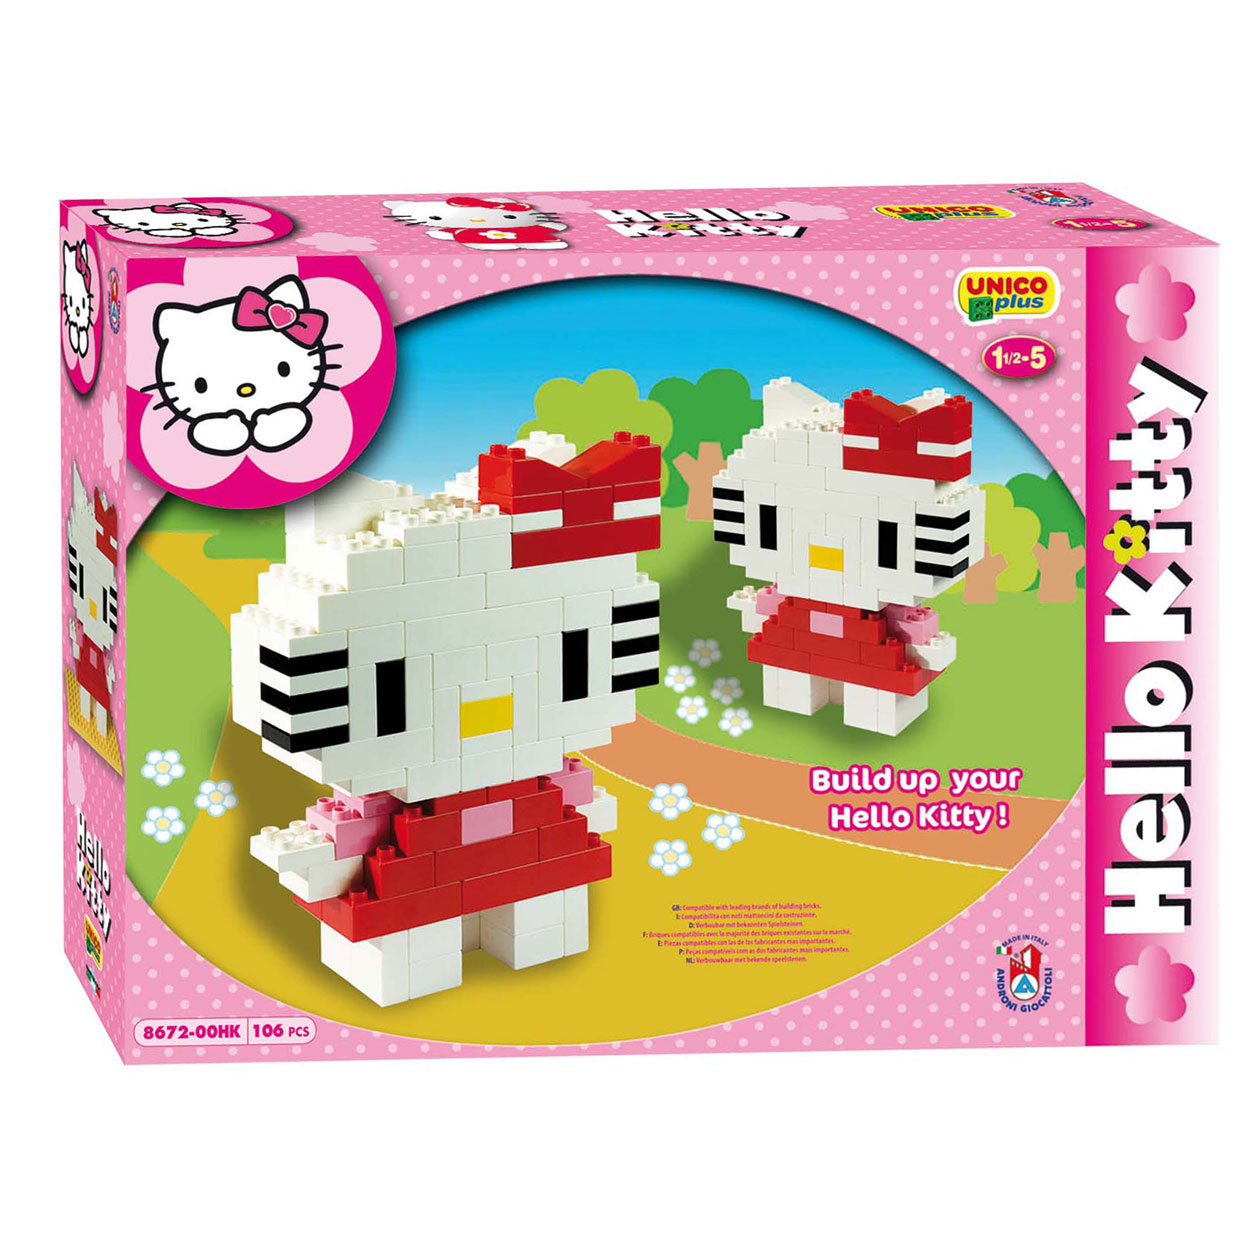 hello kitty unico hello kitty online kopen. Black Bedroom Furniture Sets. Home Design Ideas